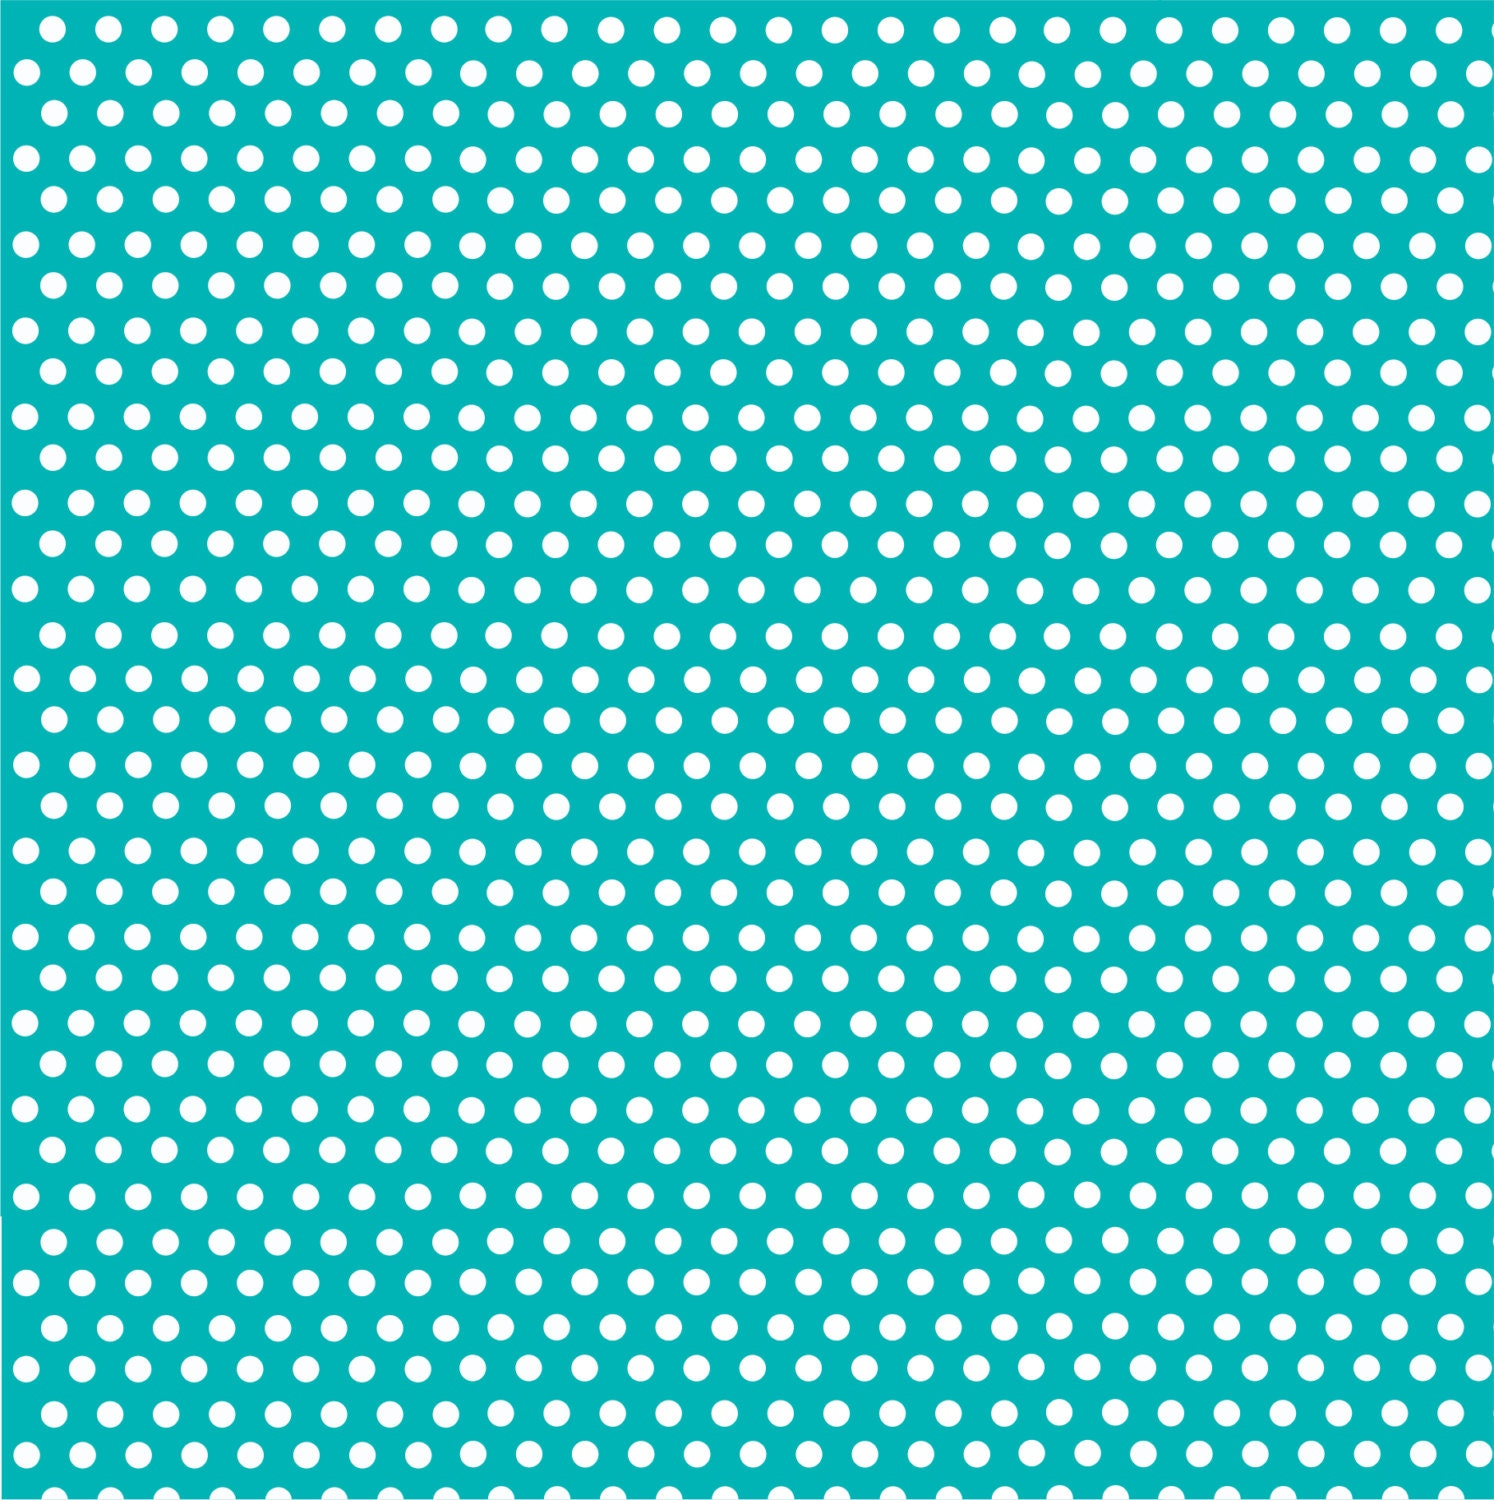 Teal With White Mini Polka Dots Heat Transfer Or Adhesive